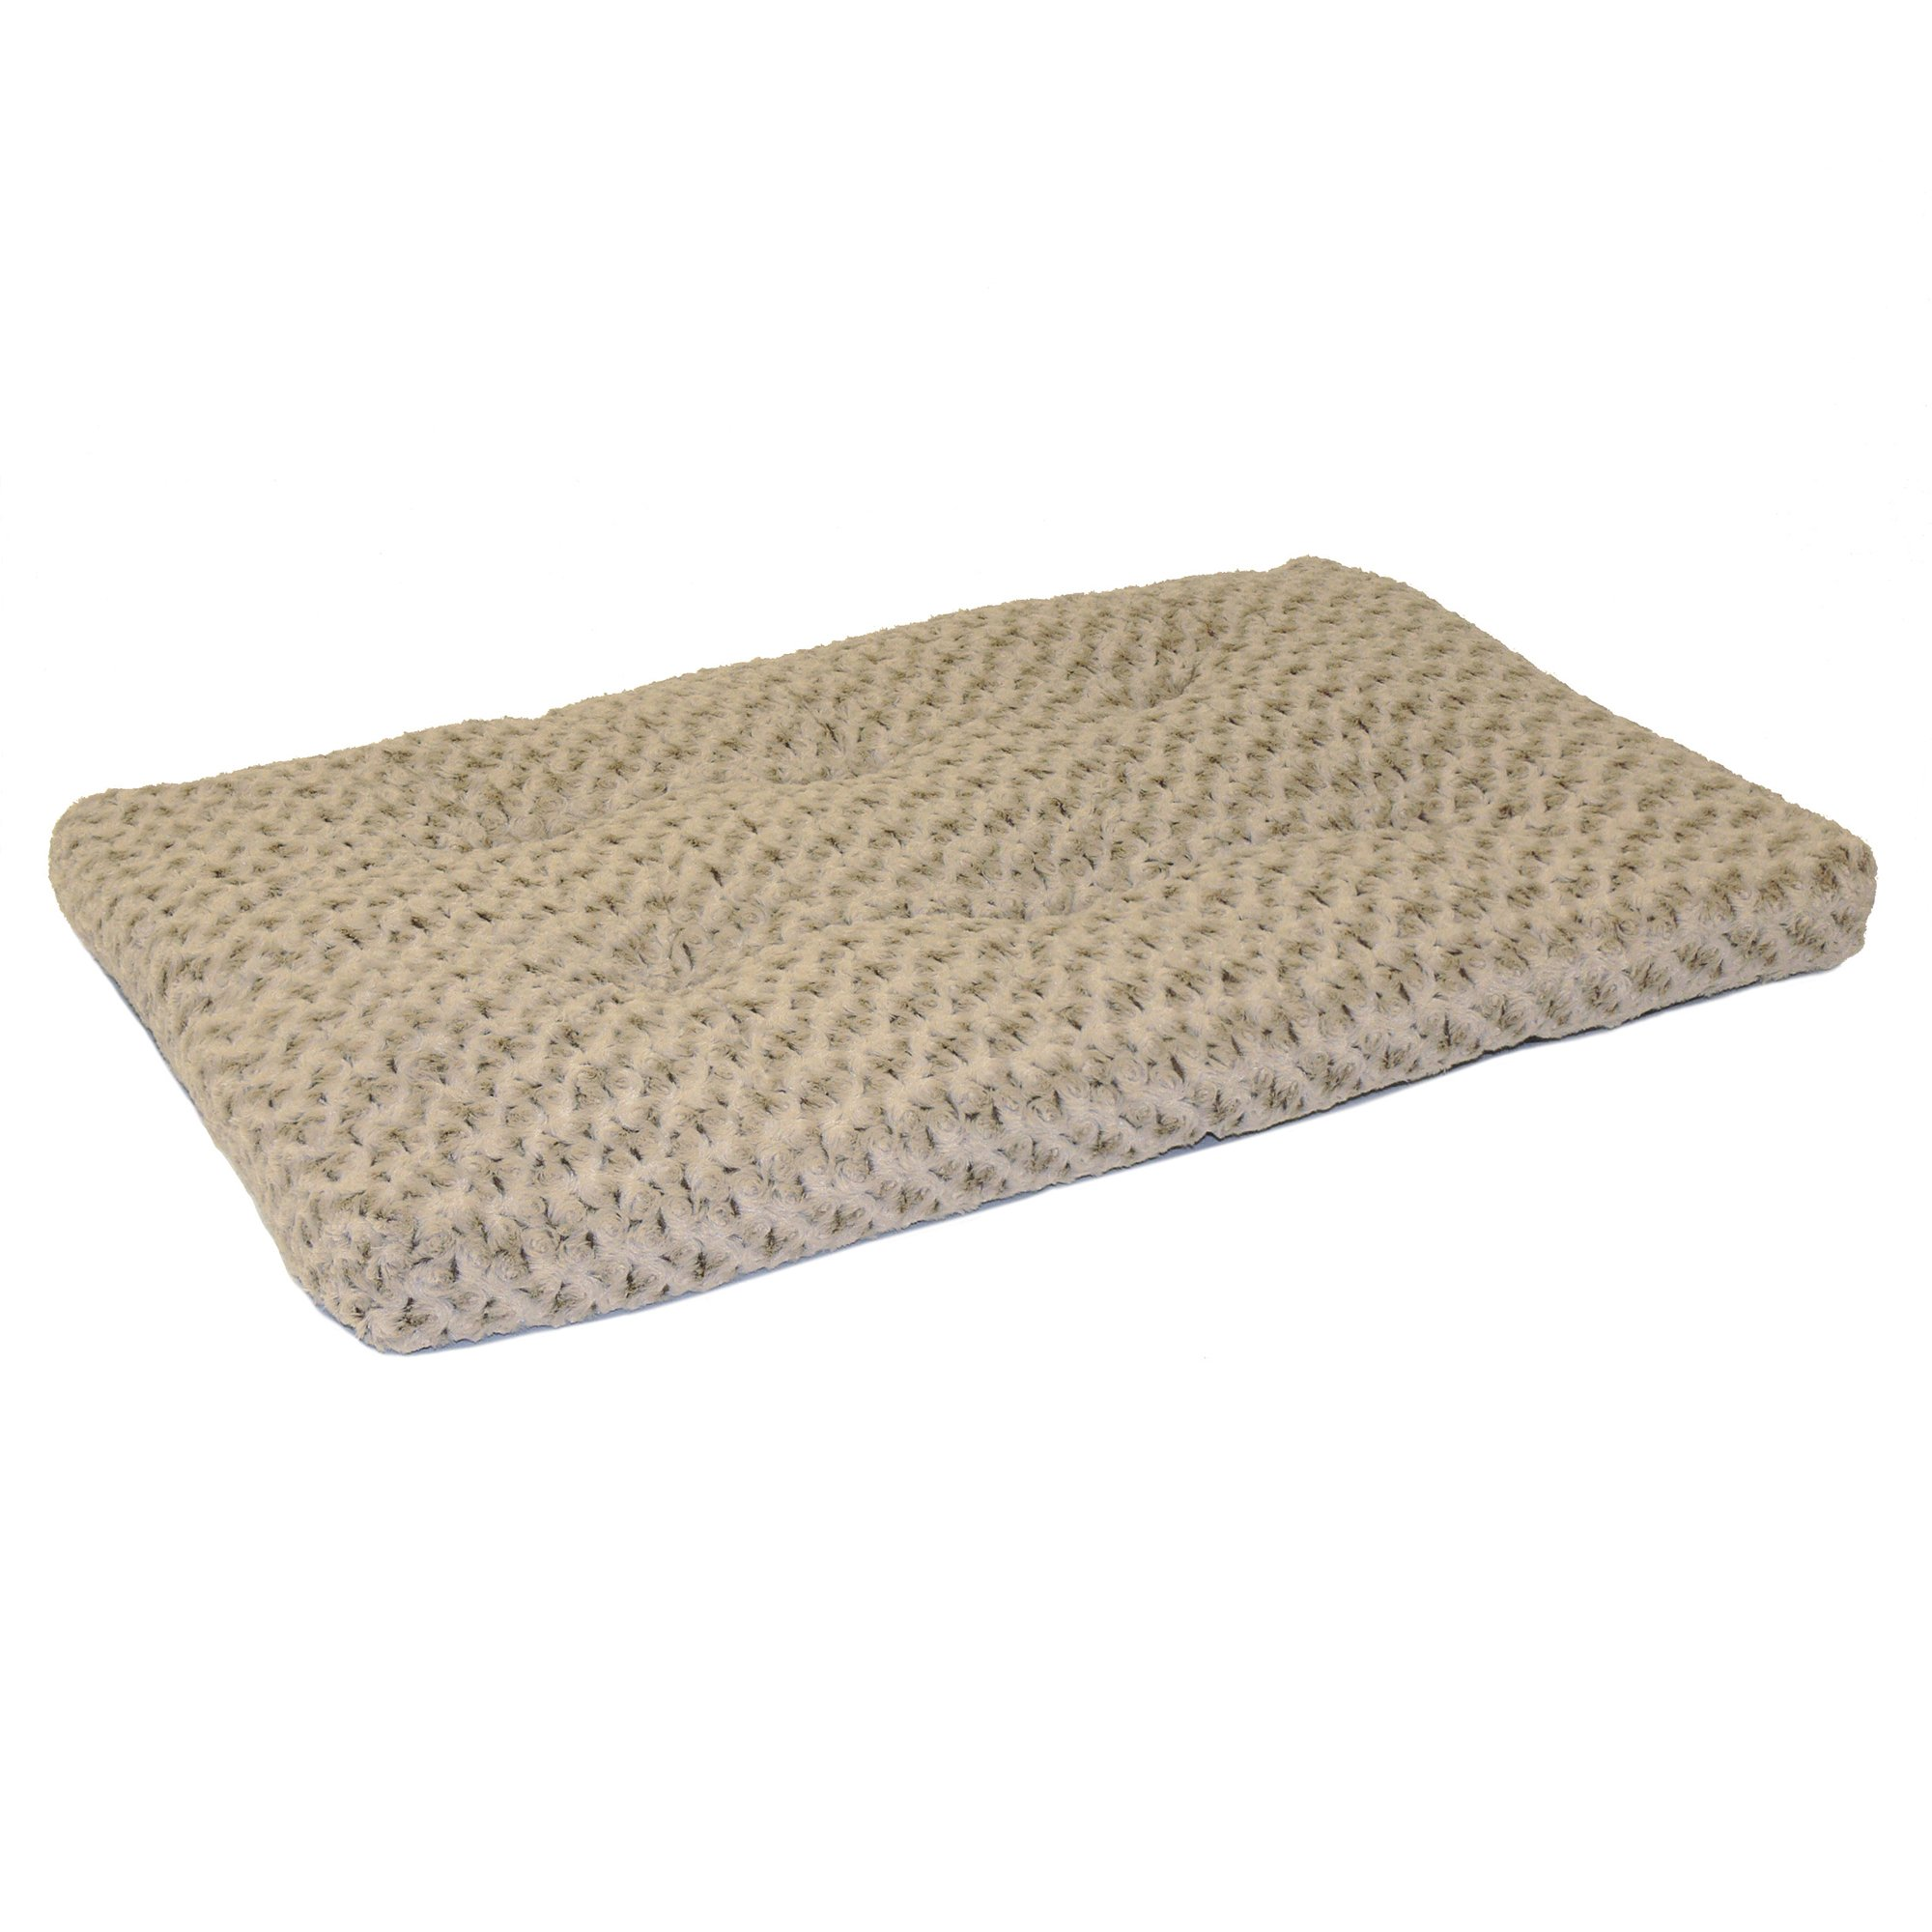 Midwest Quiet Time Ombre Taupe Dog Bed, 46